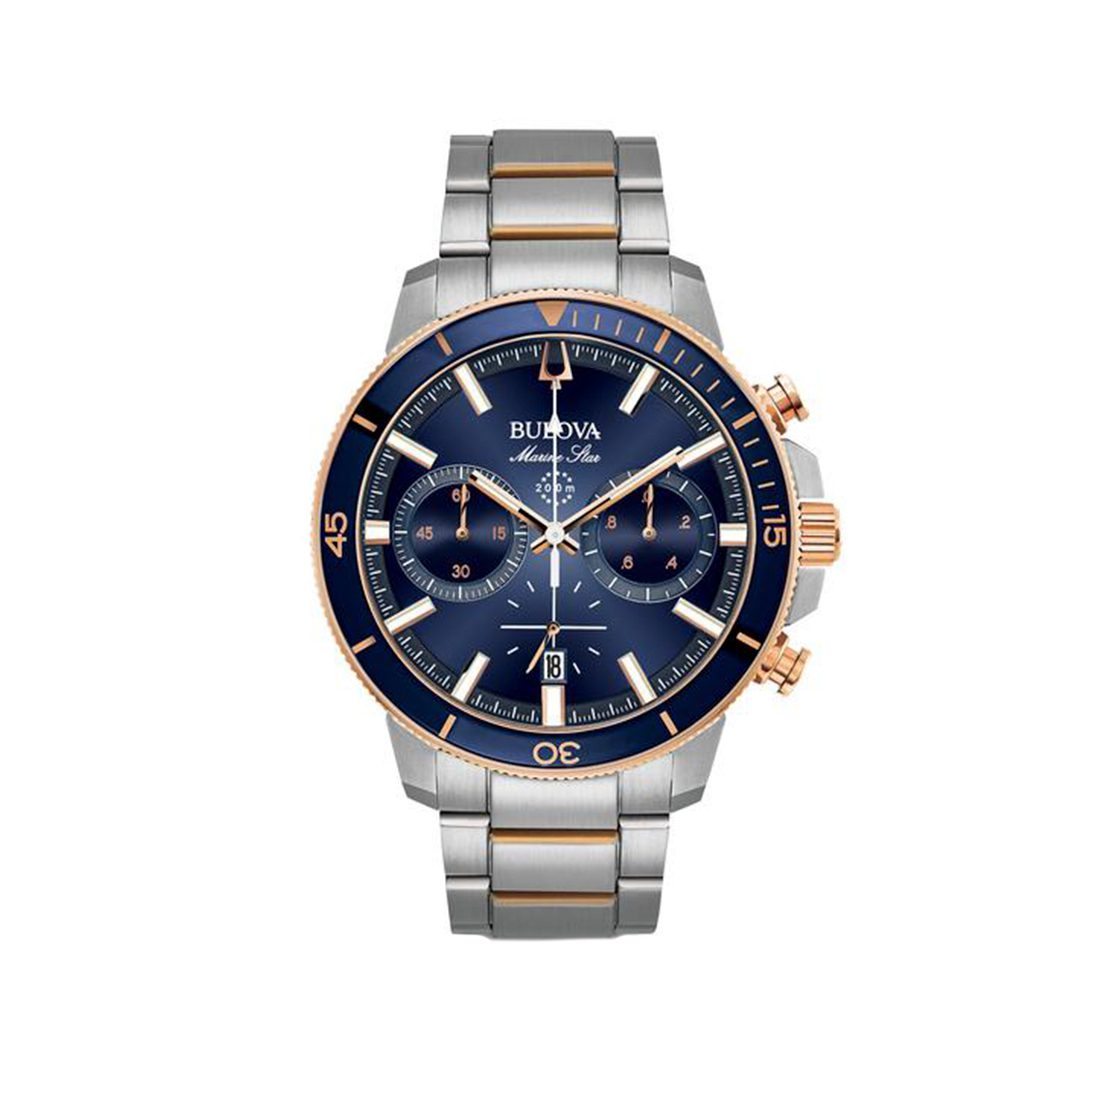 Men's Bulova chronograph watch, stainless steel with rose gold-tone accents and blue glass insert